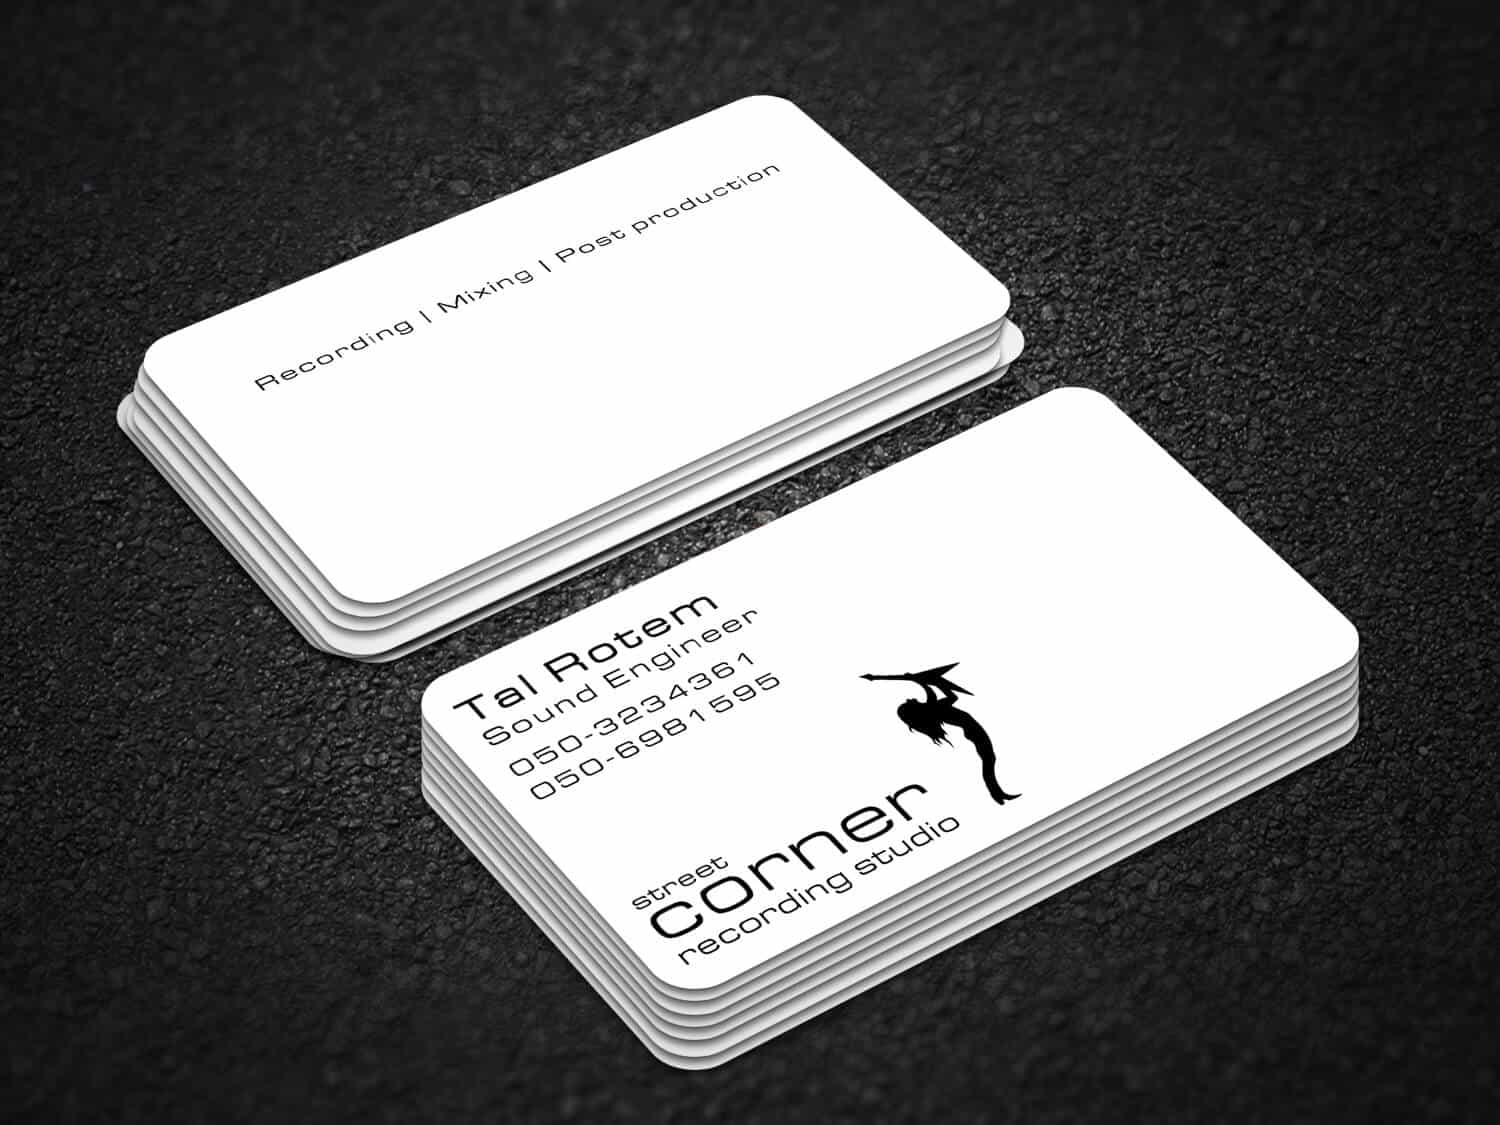 John T Kammerer Accountant - Business Card design - Graphic Design ...